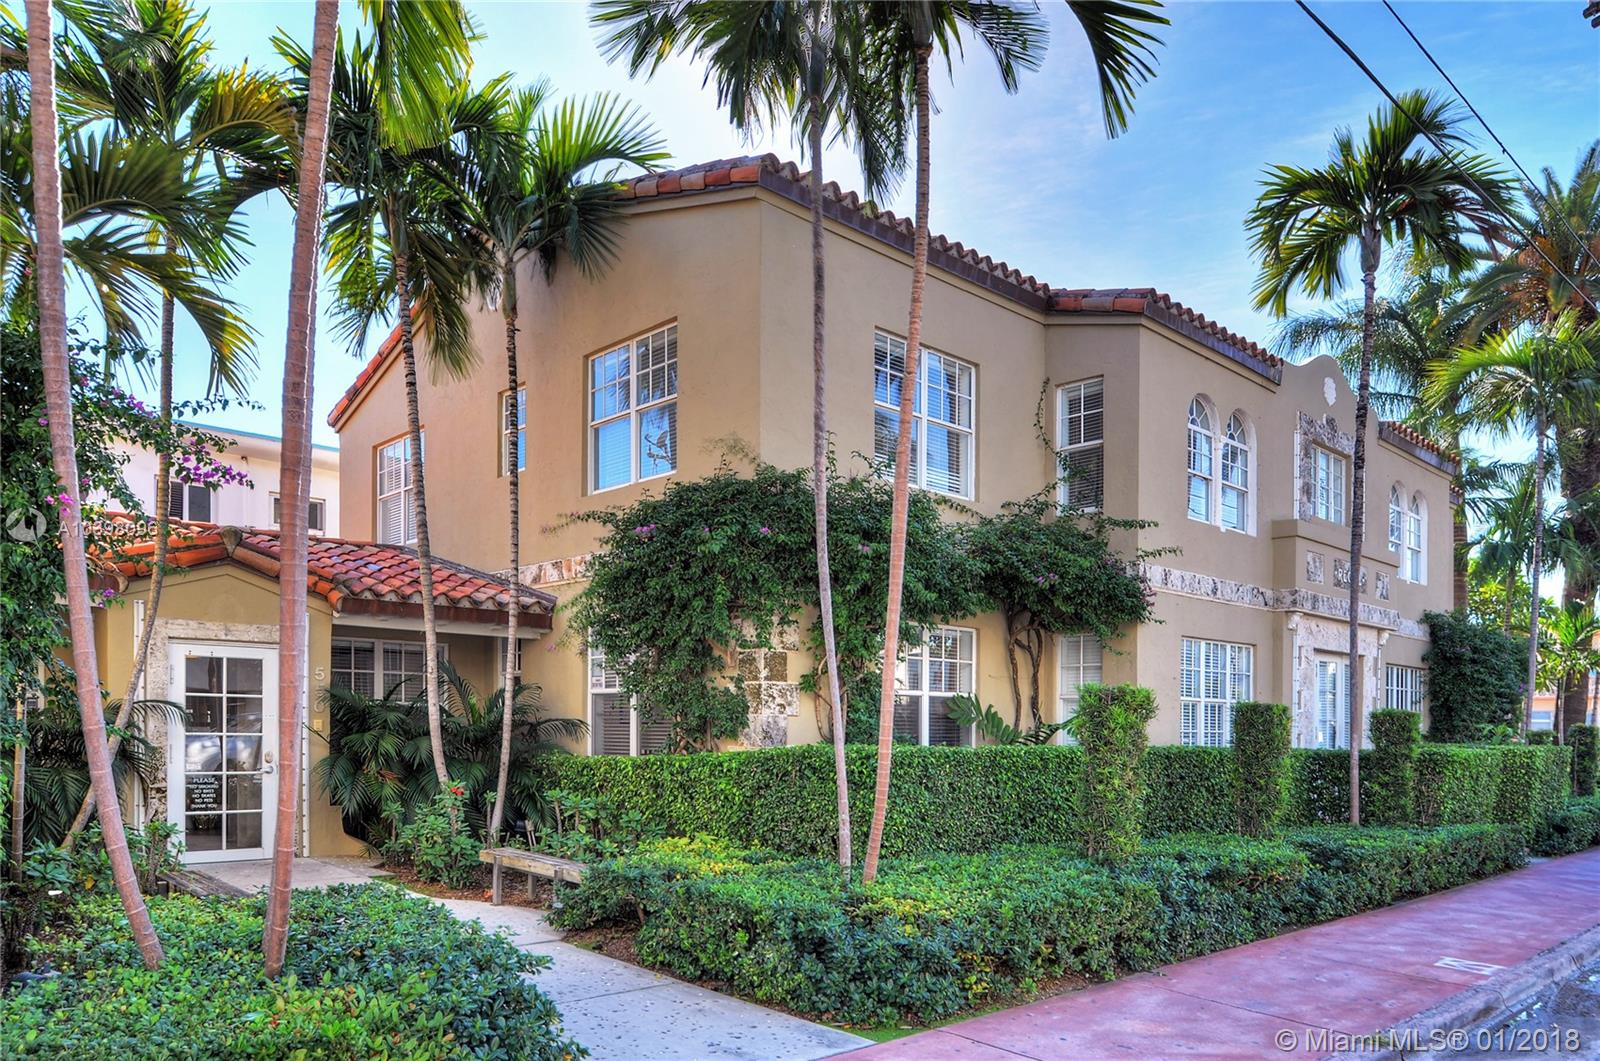 530 11th St Luxury Real Estate